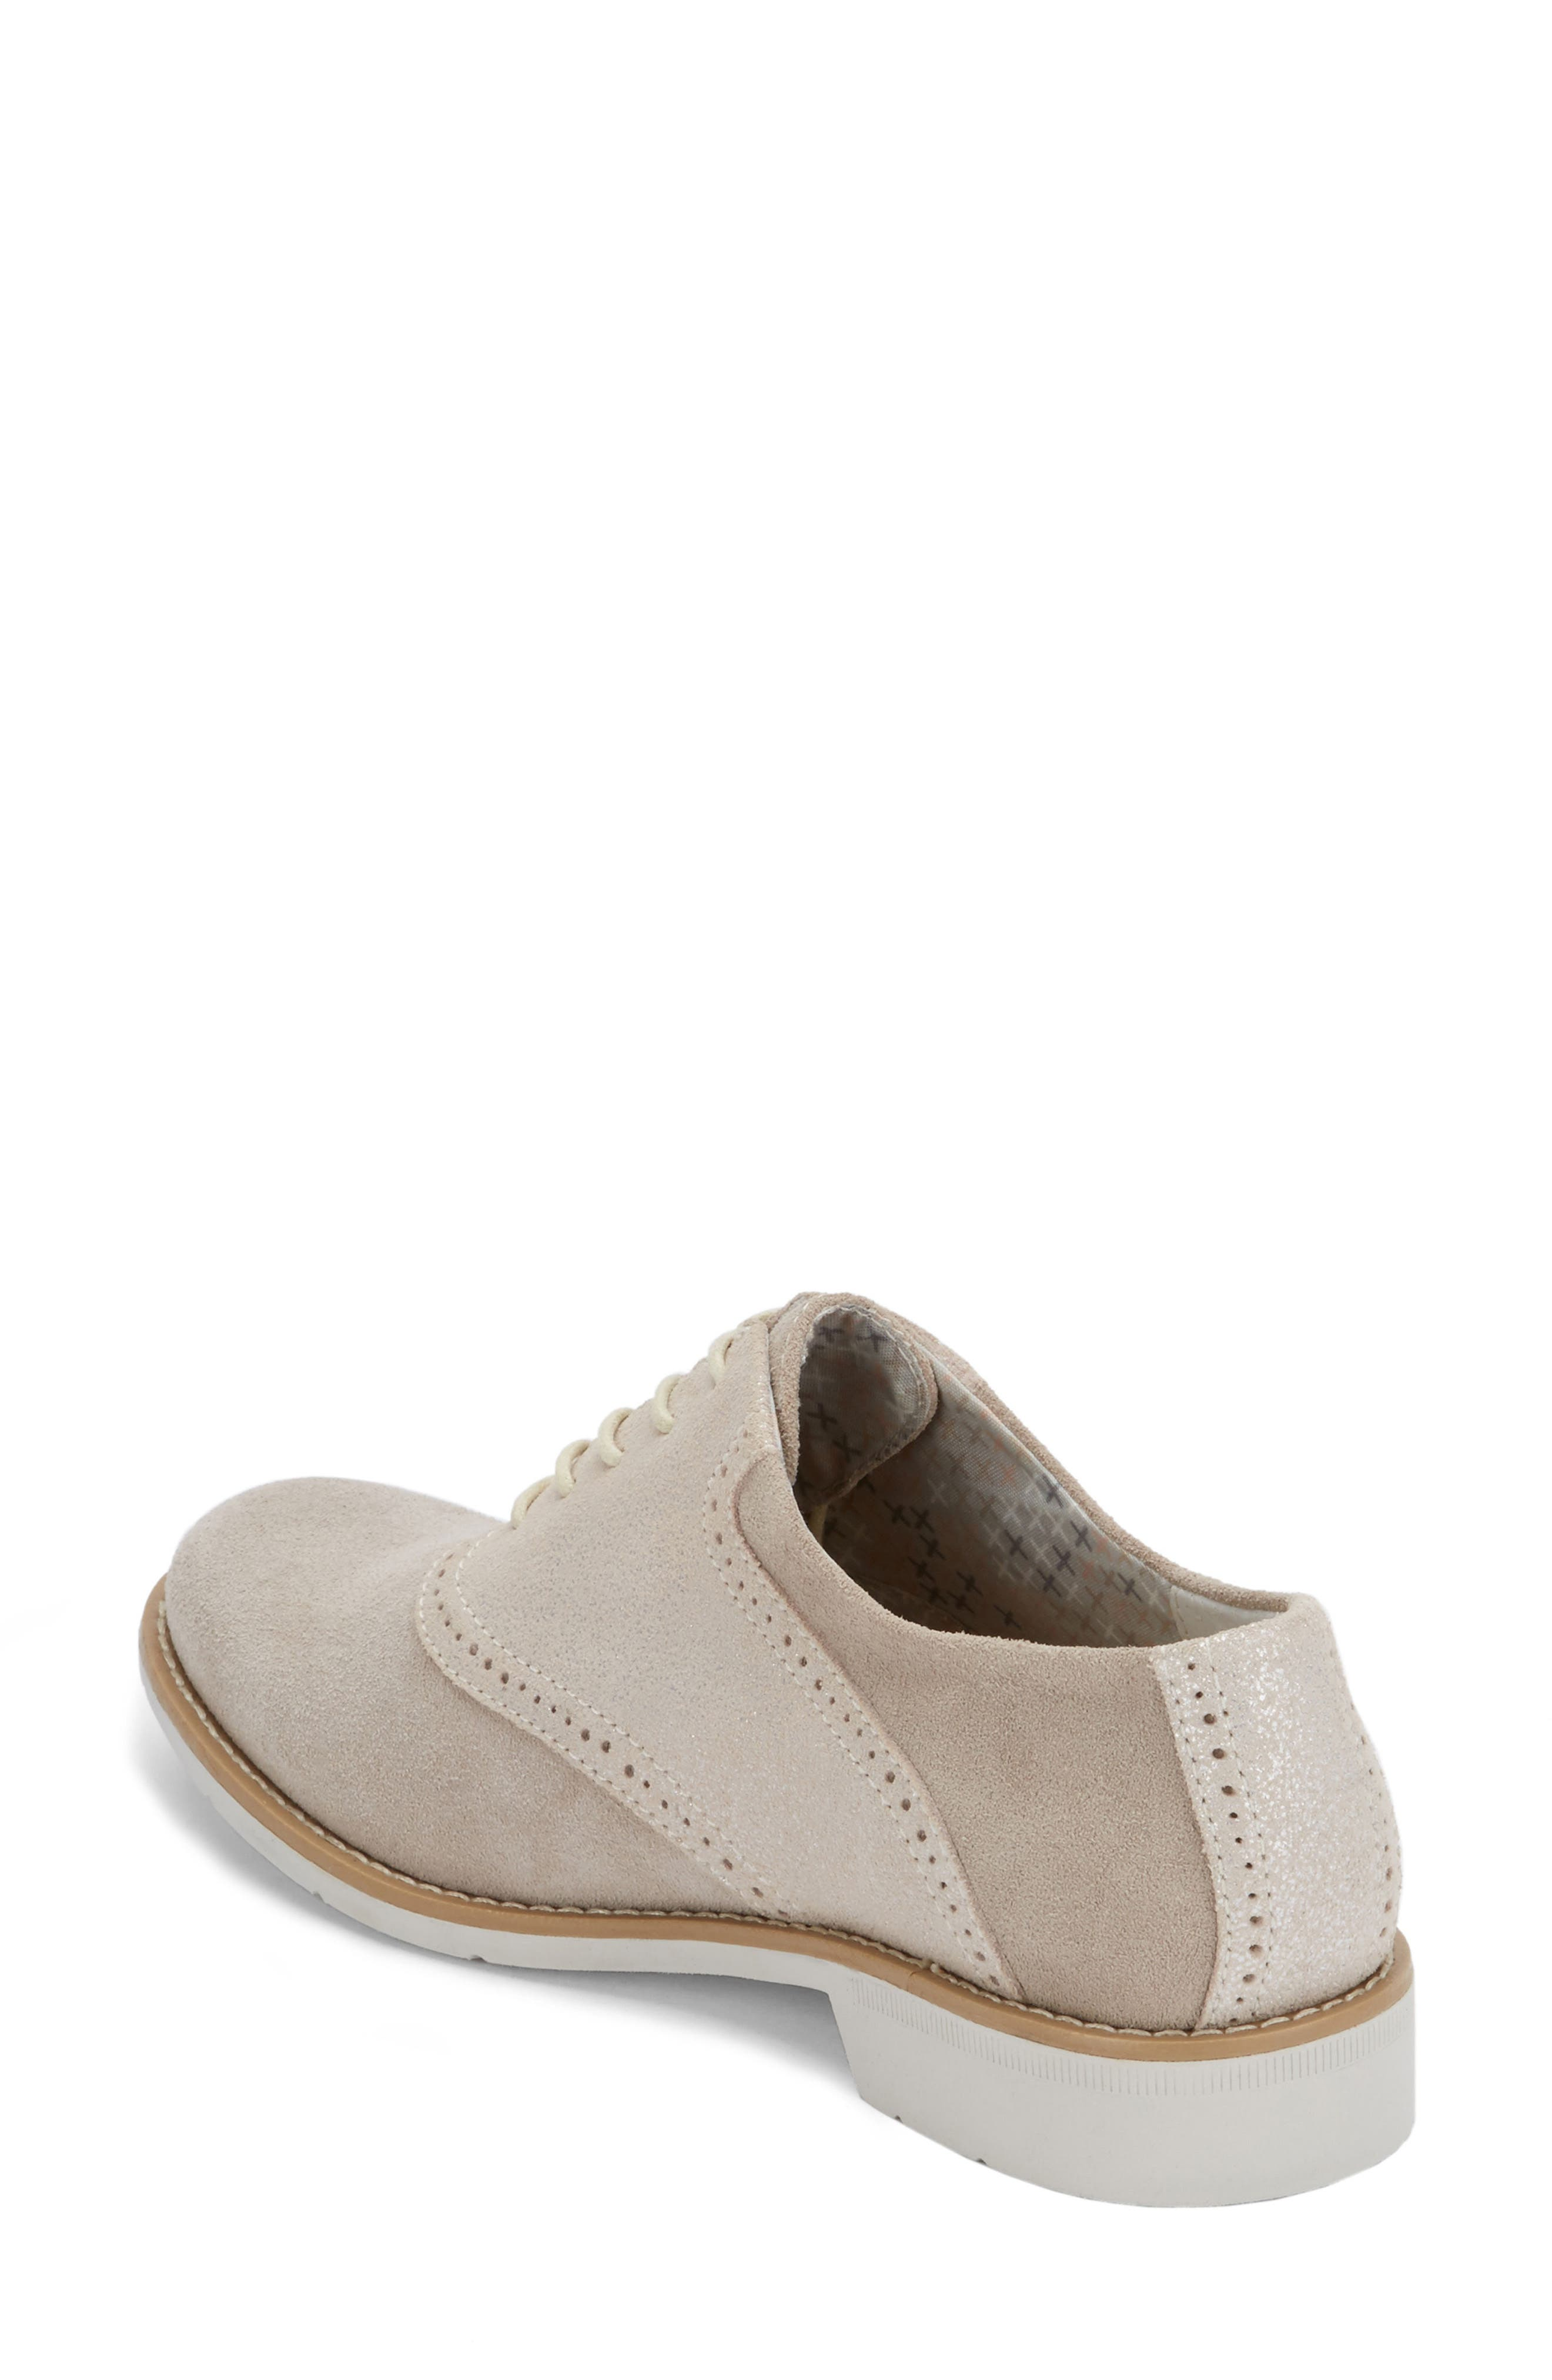 G.H. Bass and Co. Dora Lace-Up Oxford,                             Alternate thumbnail 2, color,                             Soft Grey/ Silver Suede